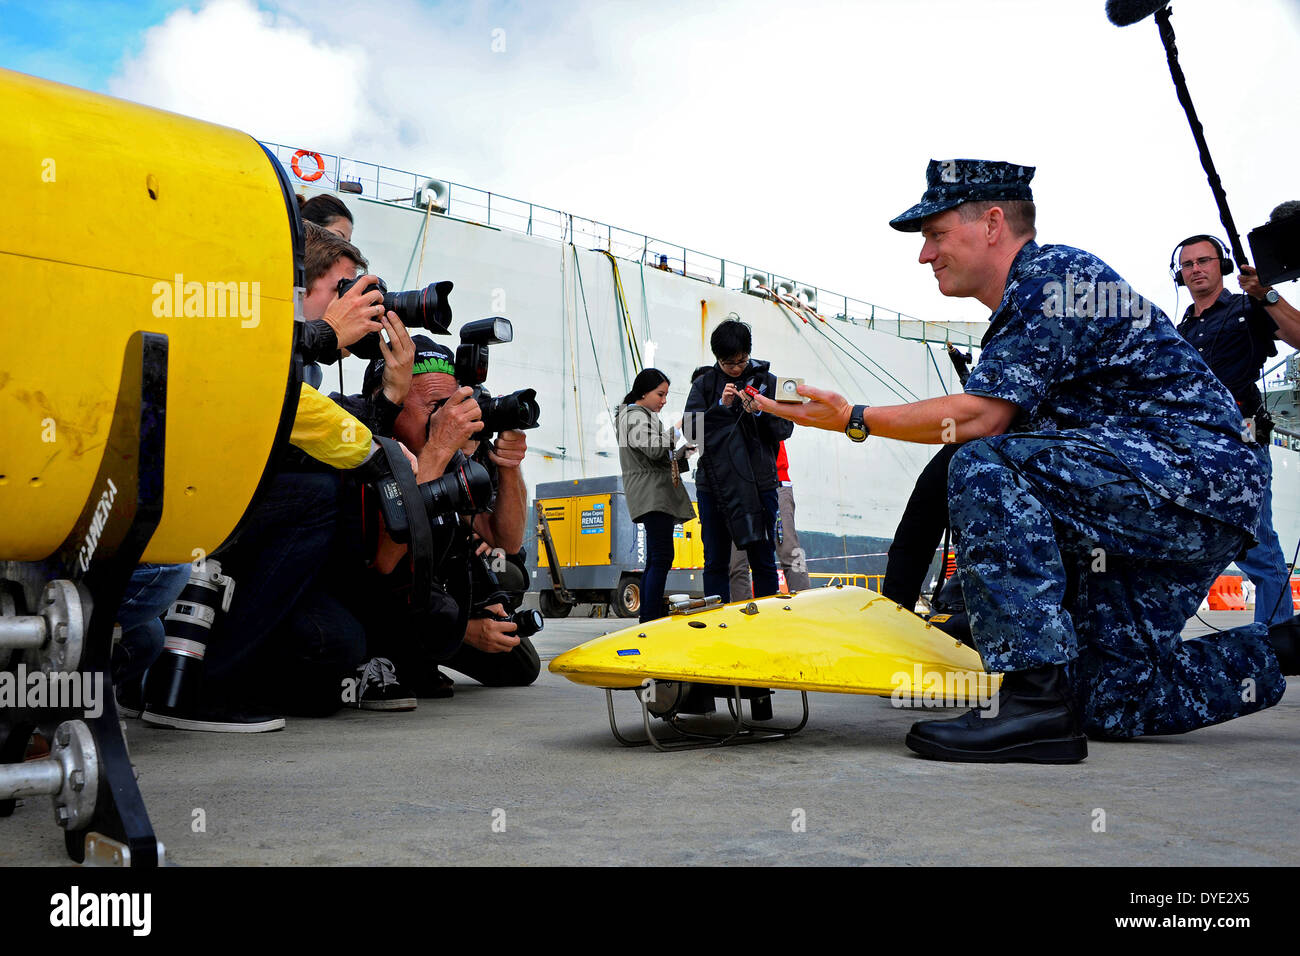 US Navy Capt. Mark Matthews, supervisor of salvage and diving, demonstrates to international media how the towed array listens for the signal emitted by a locator beacon like the one on Malaysia Airlines Flight MH370 March 30, 2014 in Perth, Australia. The US Navy is assisting in the search for the missing Malaysia Airlines Boeing 777. - Stock Image